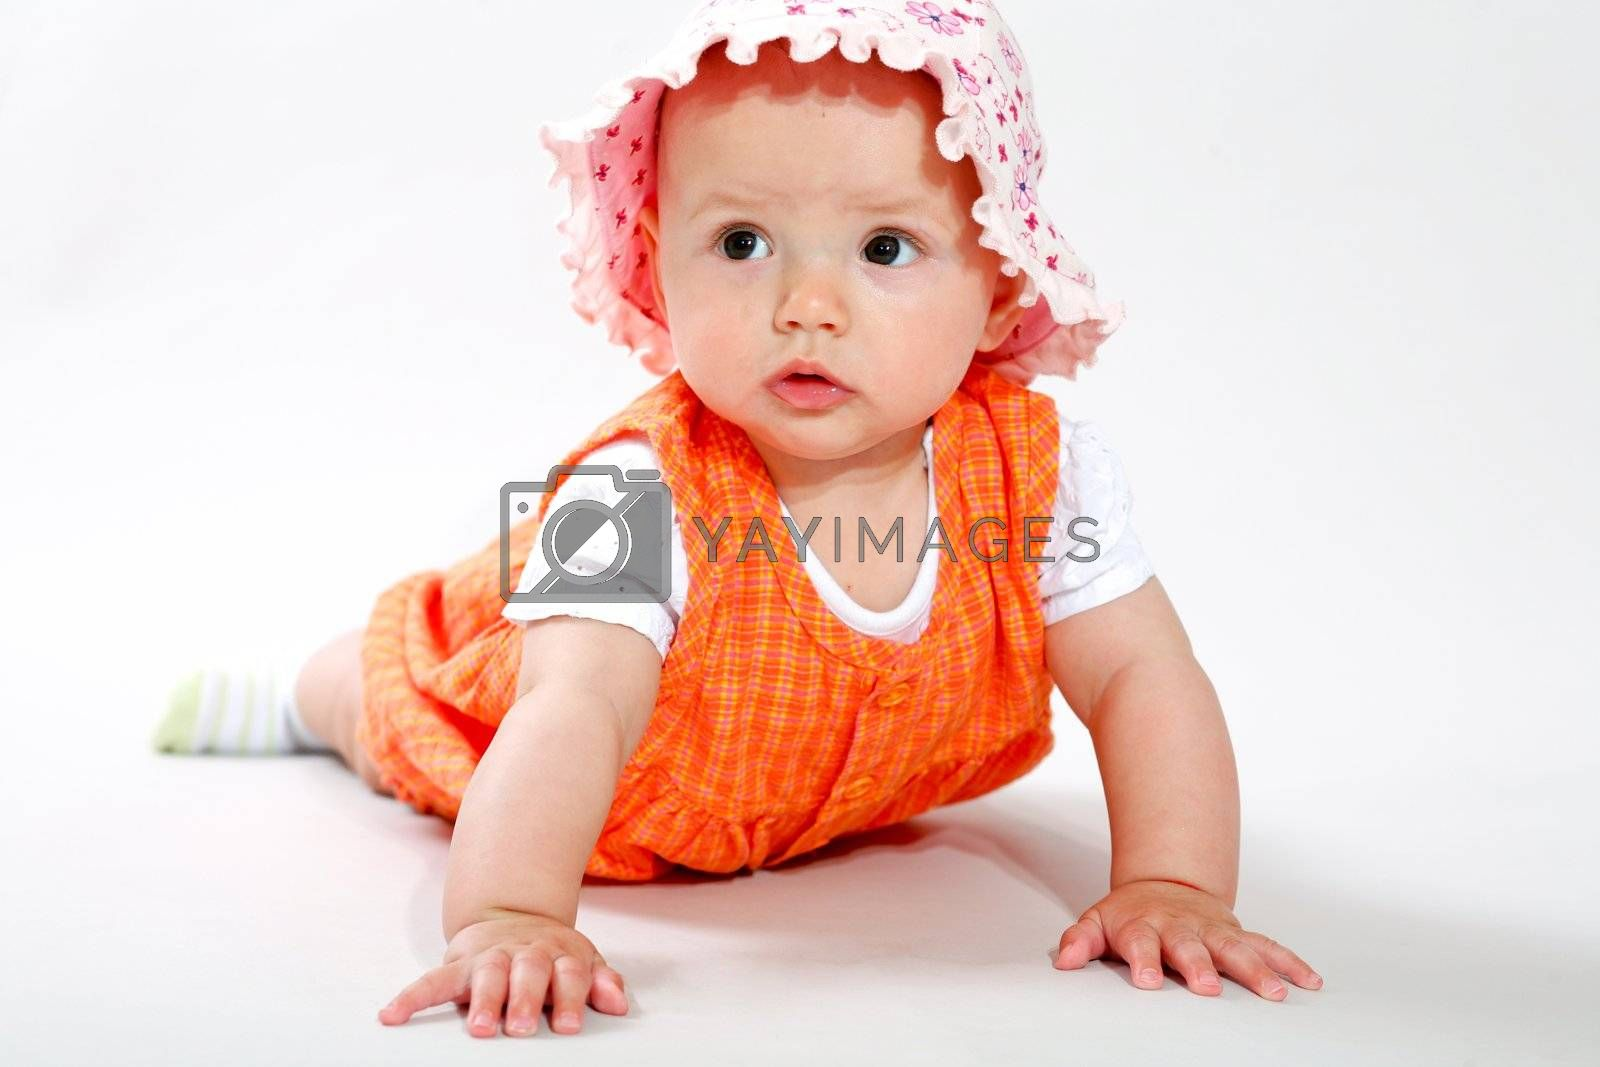 A little baby-girl crawling on the floor